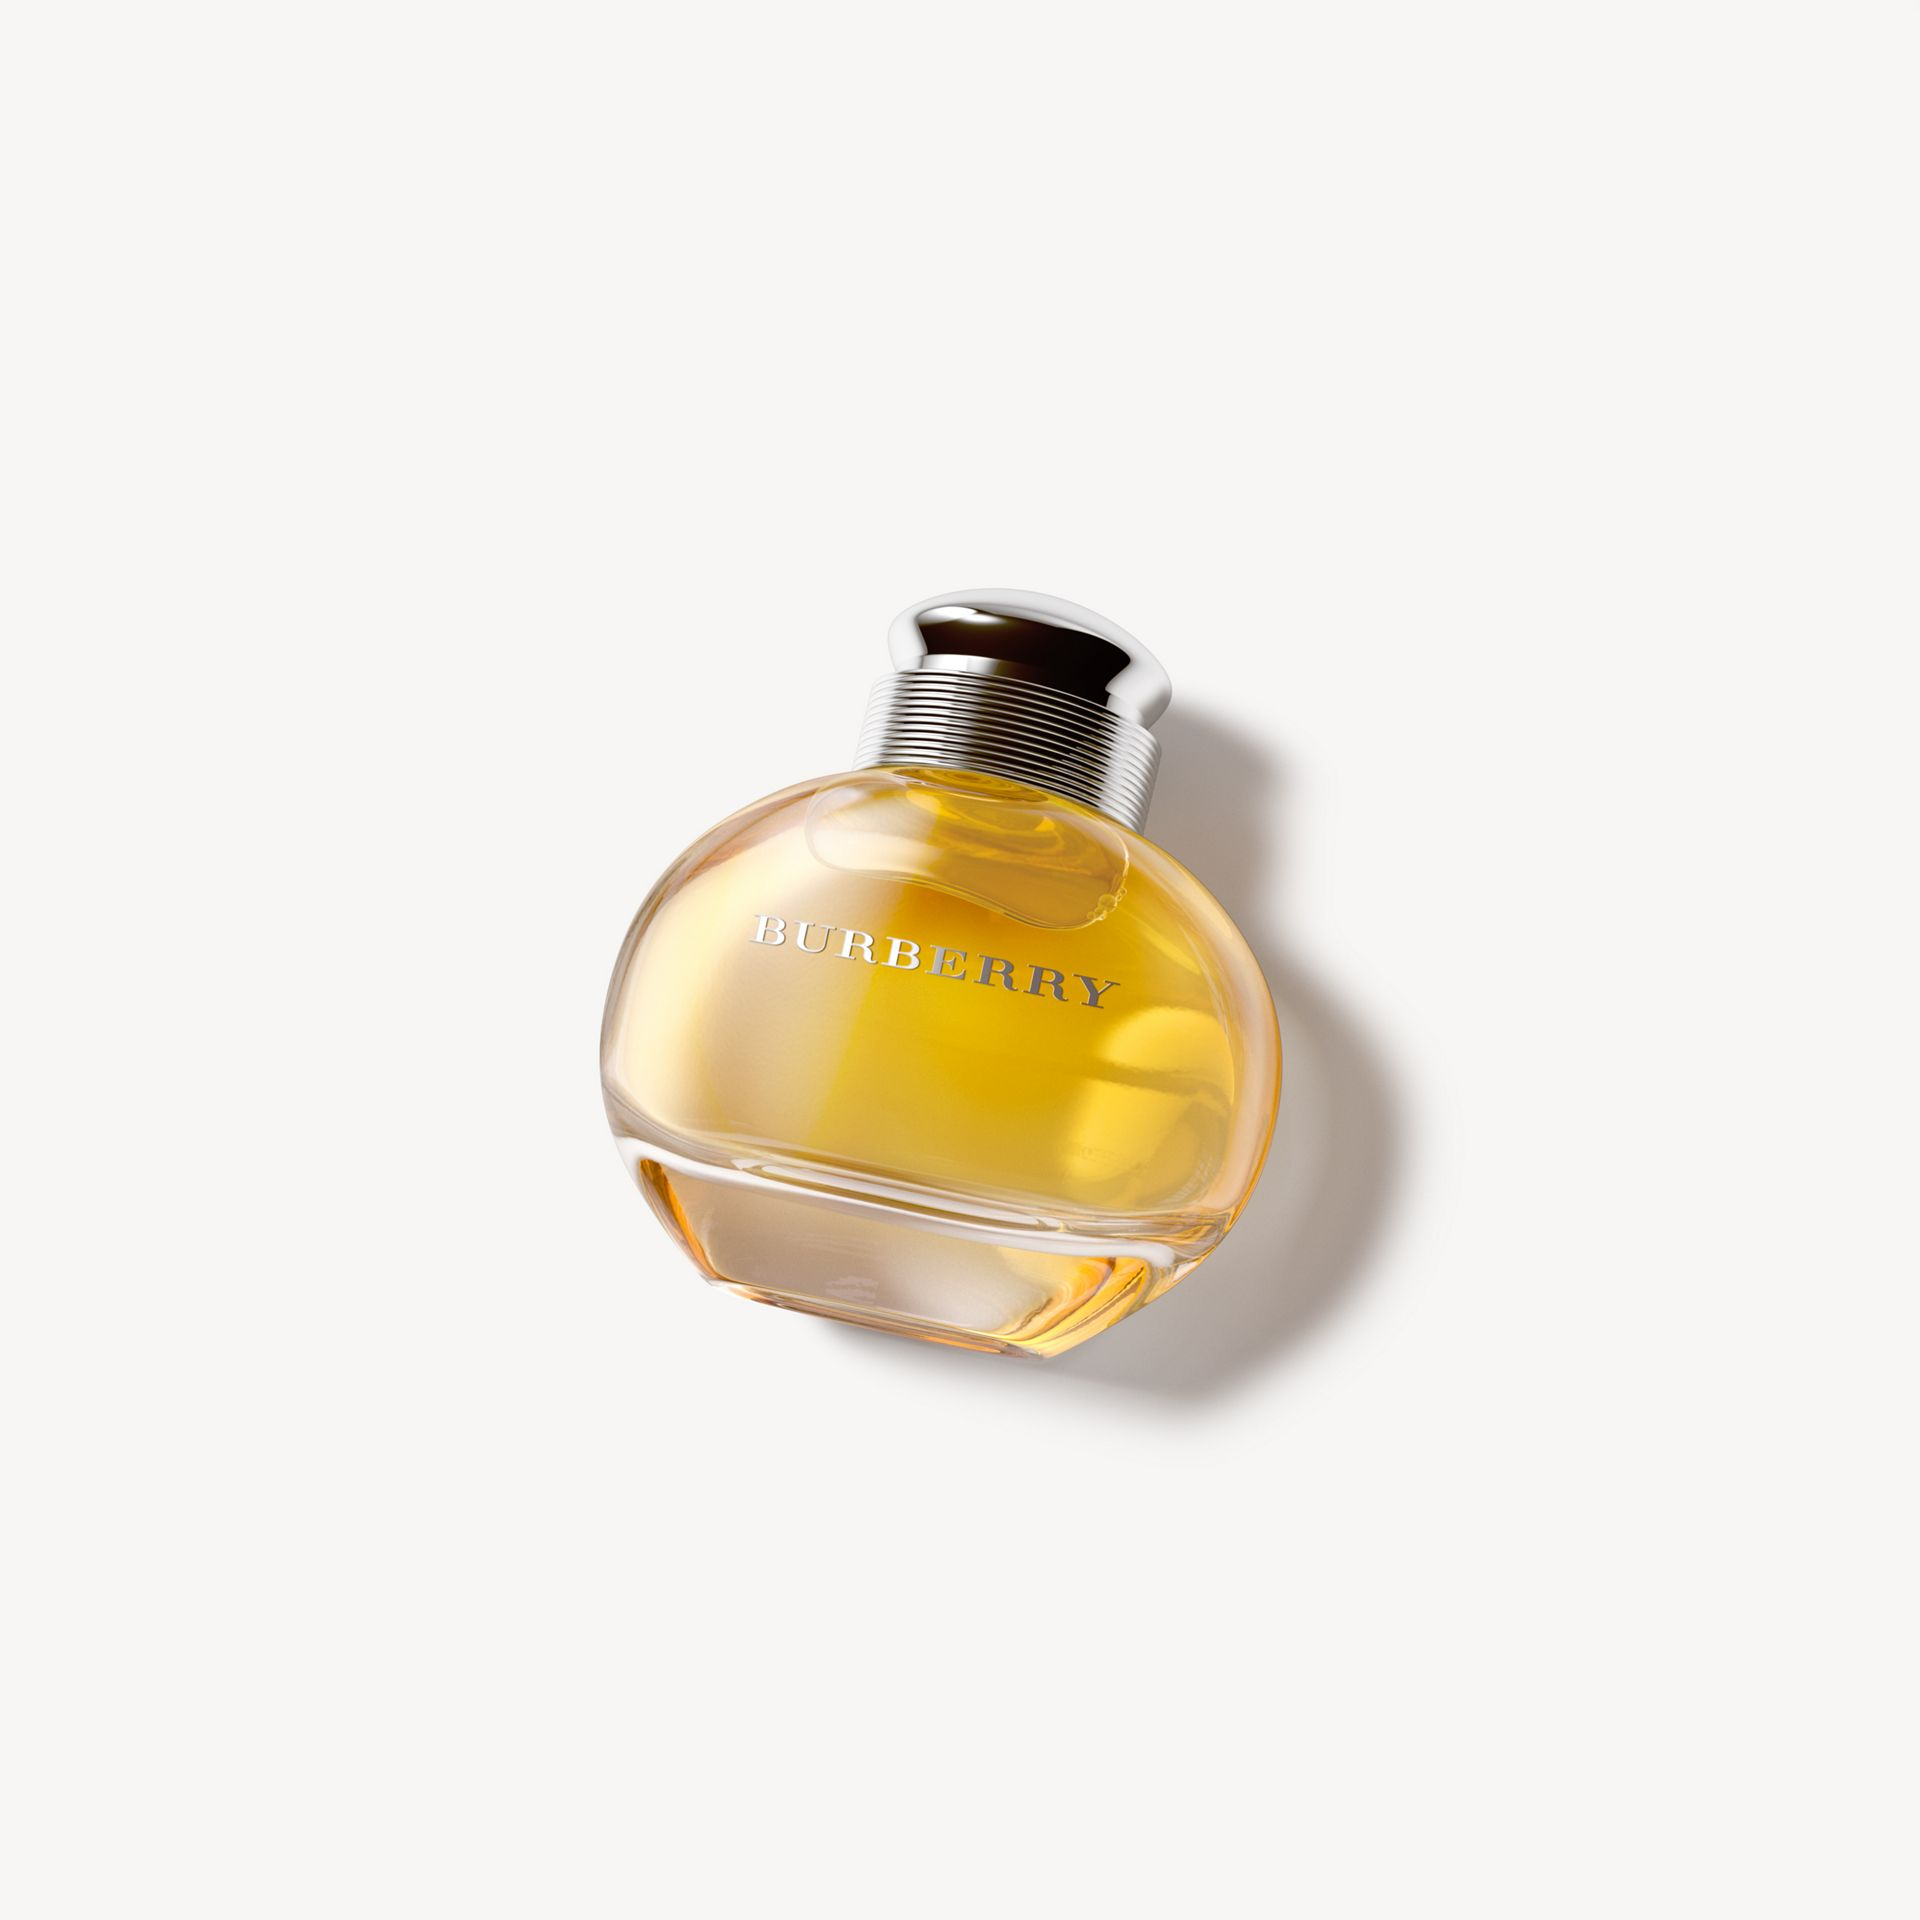 Burberry For Women Eau de Parfum 50 ml - Femme | Burberry Canada - photo de la galerie 0